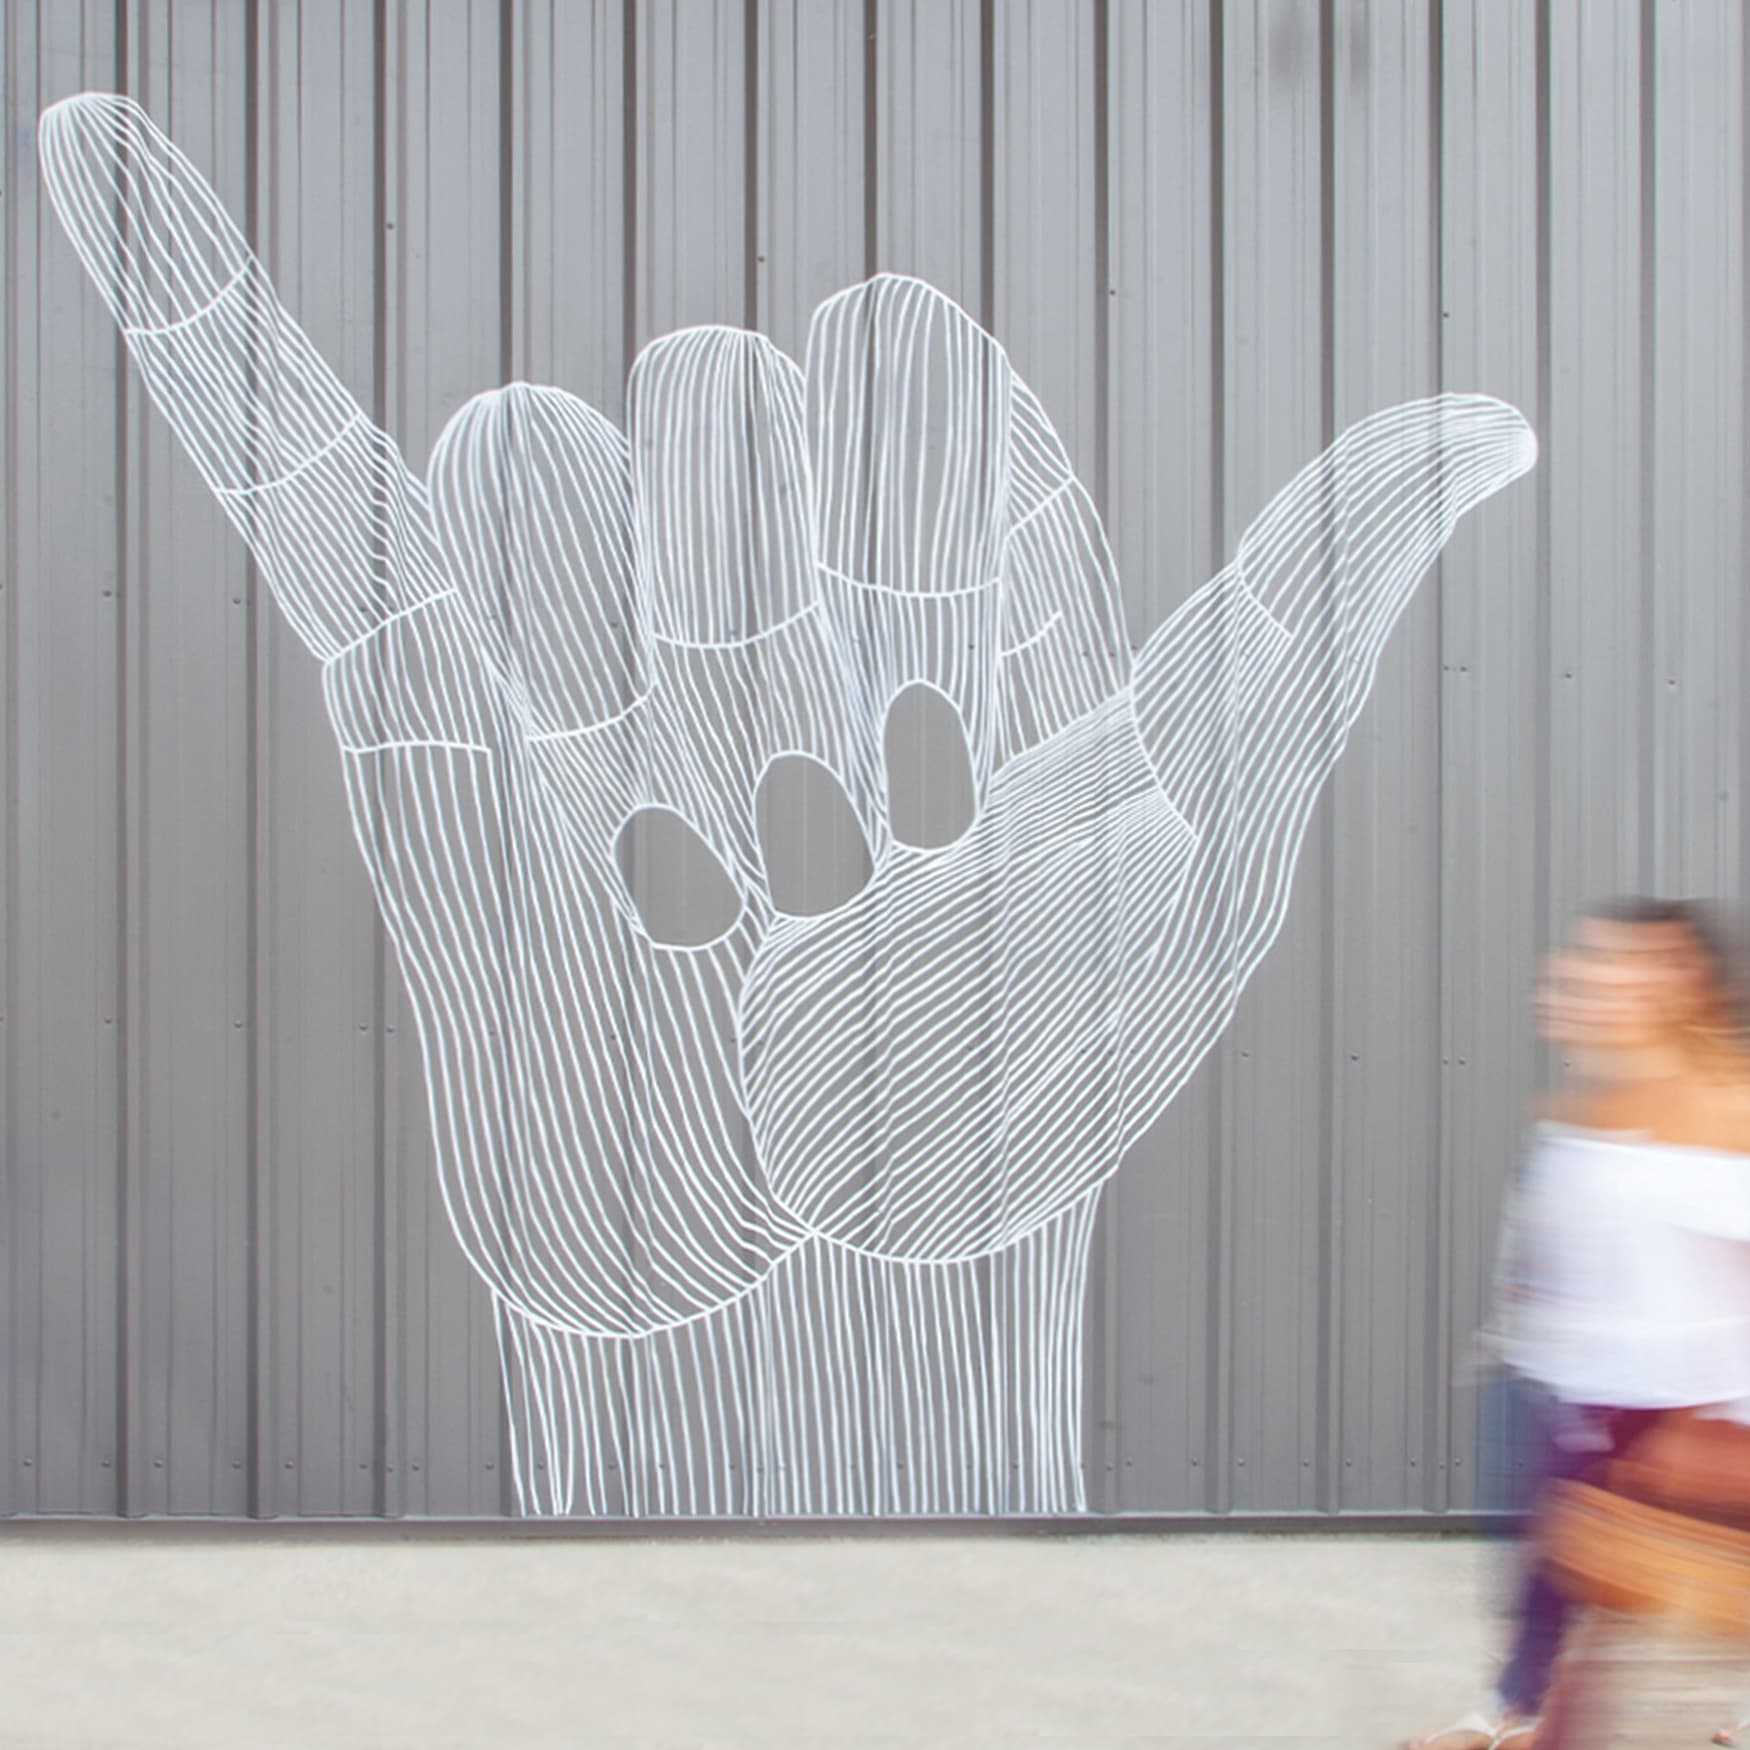 Public Art Specialty Graphic Mural of shaka hand on corrugated metal wall